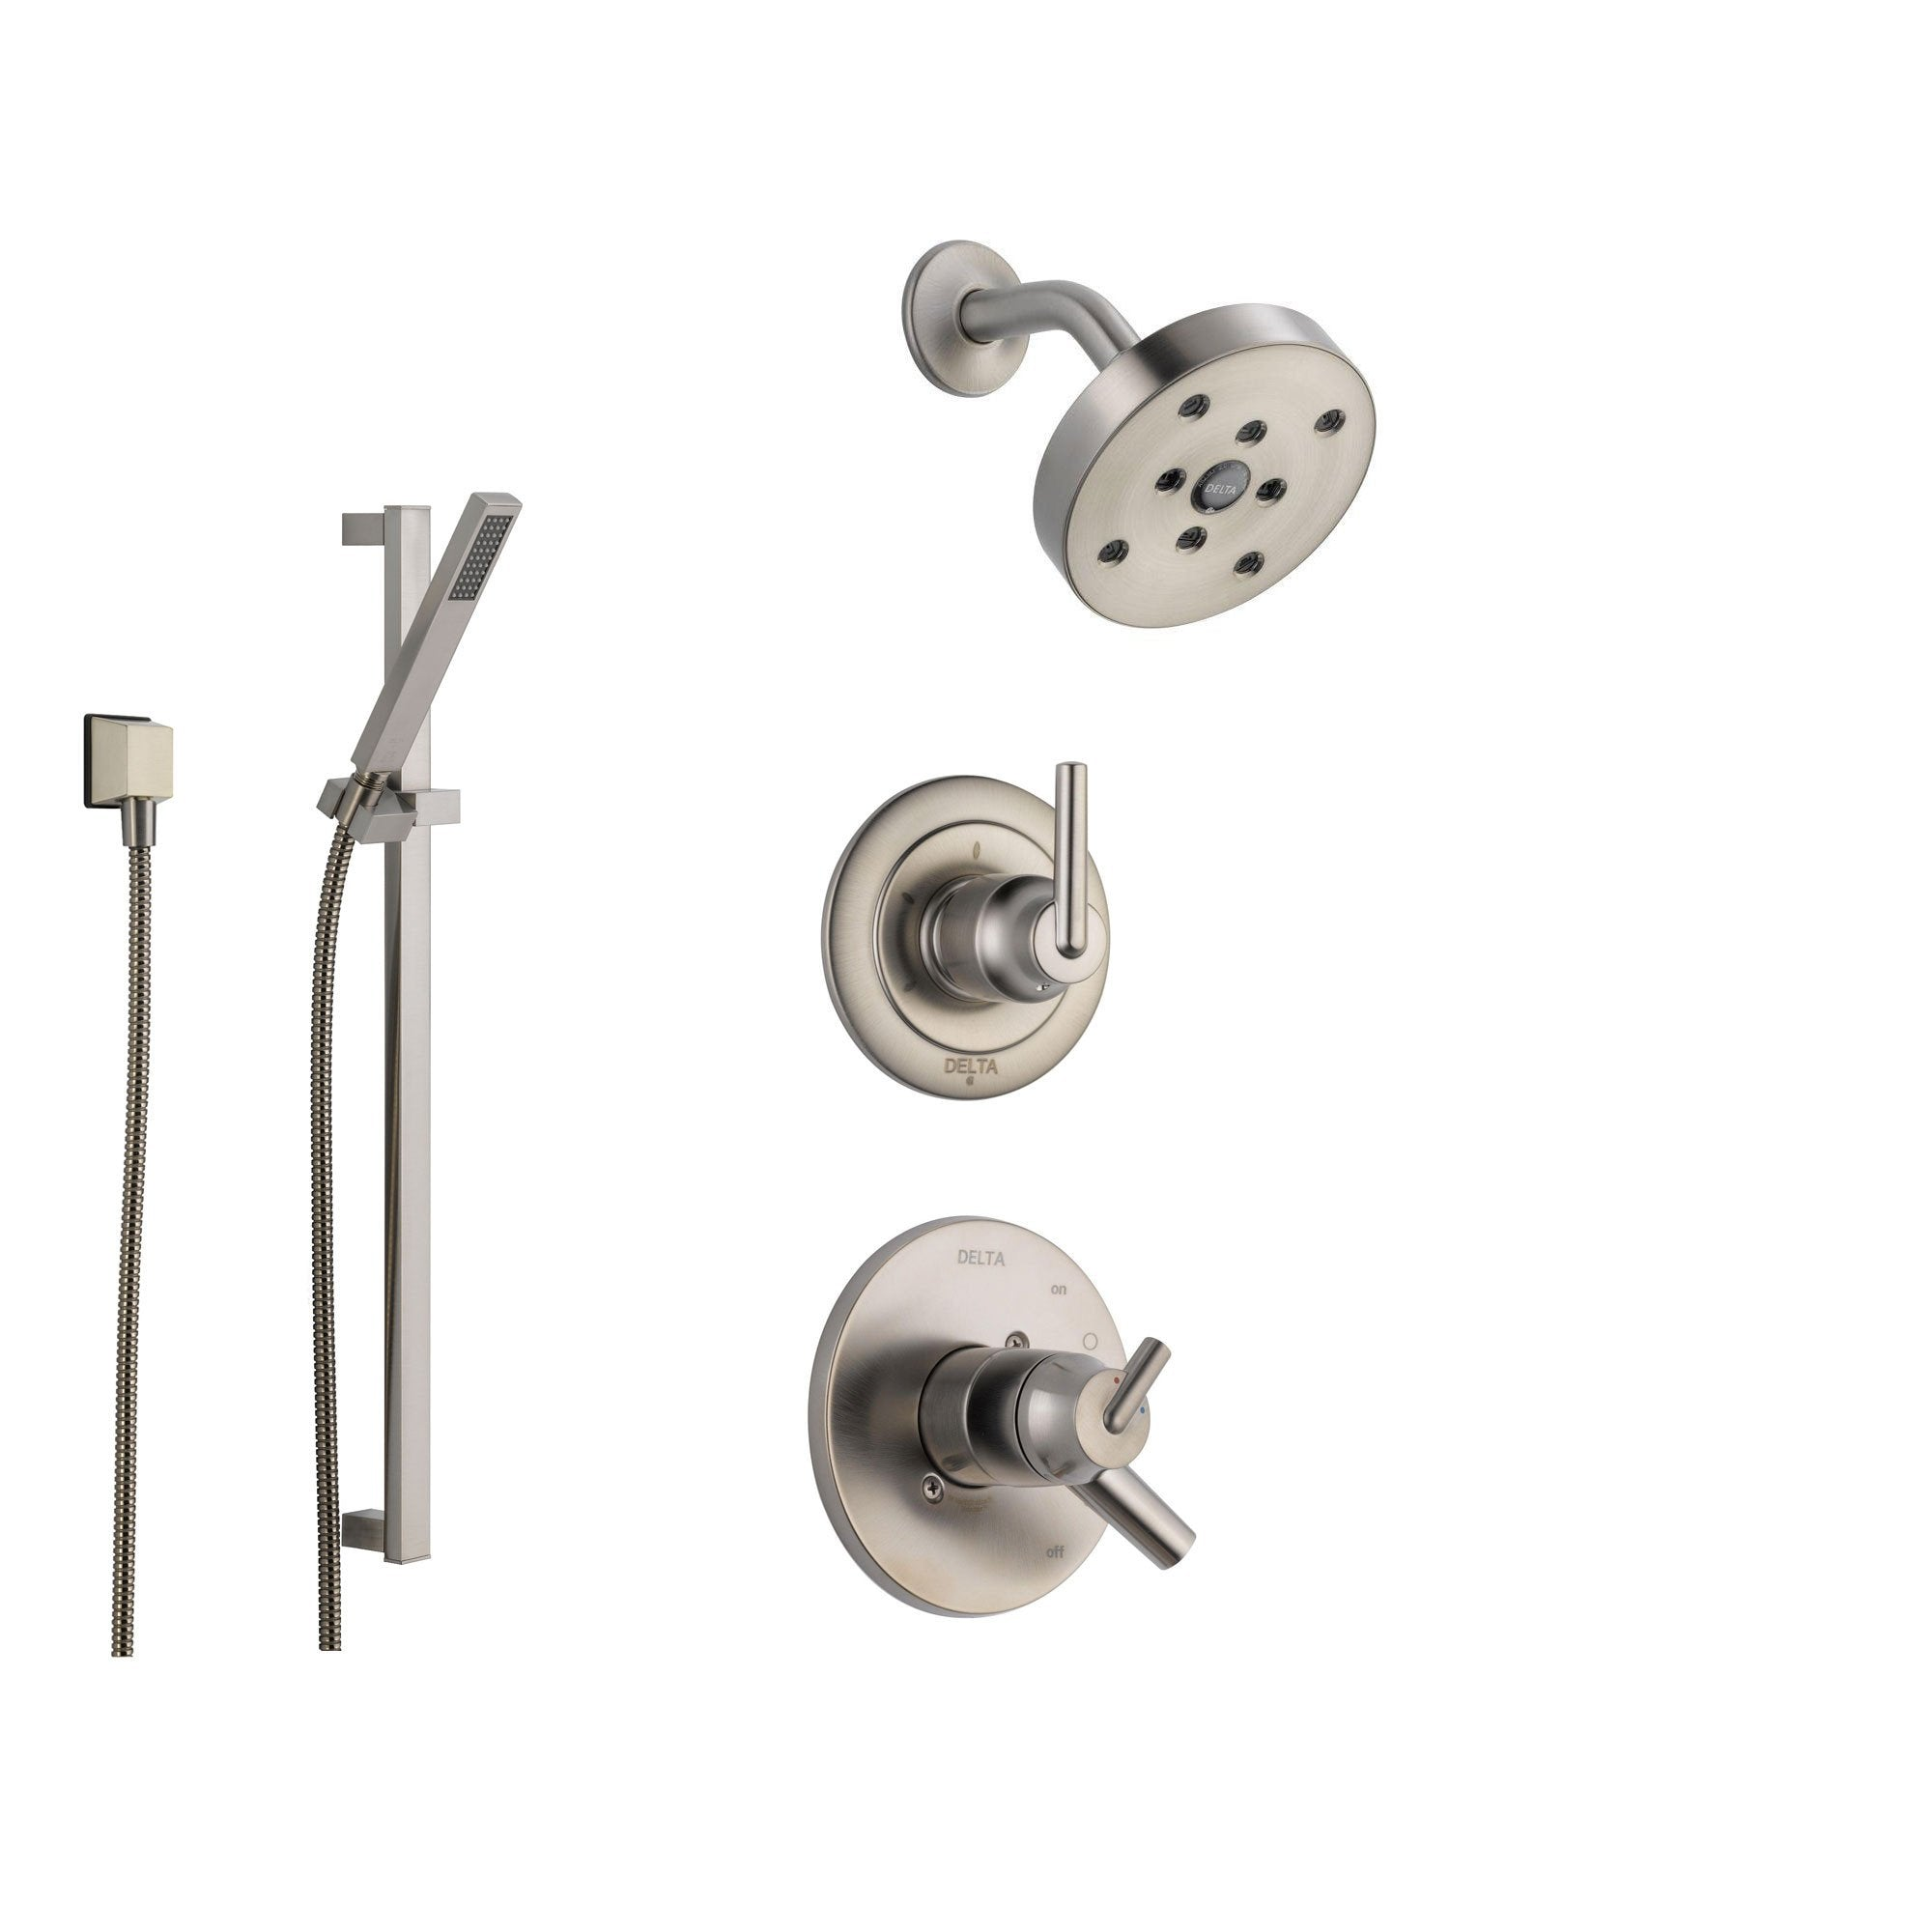 Delta Trinsic Stainless Steel Shower System with Dual Control Shower Handle, 3-setting Diverter, Modern Round Showerhead, and Handheld Shower Spray SS175981SS